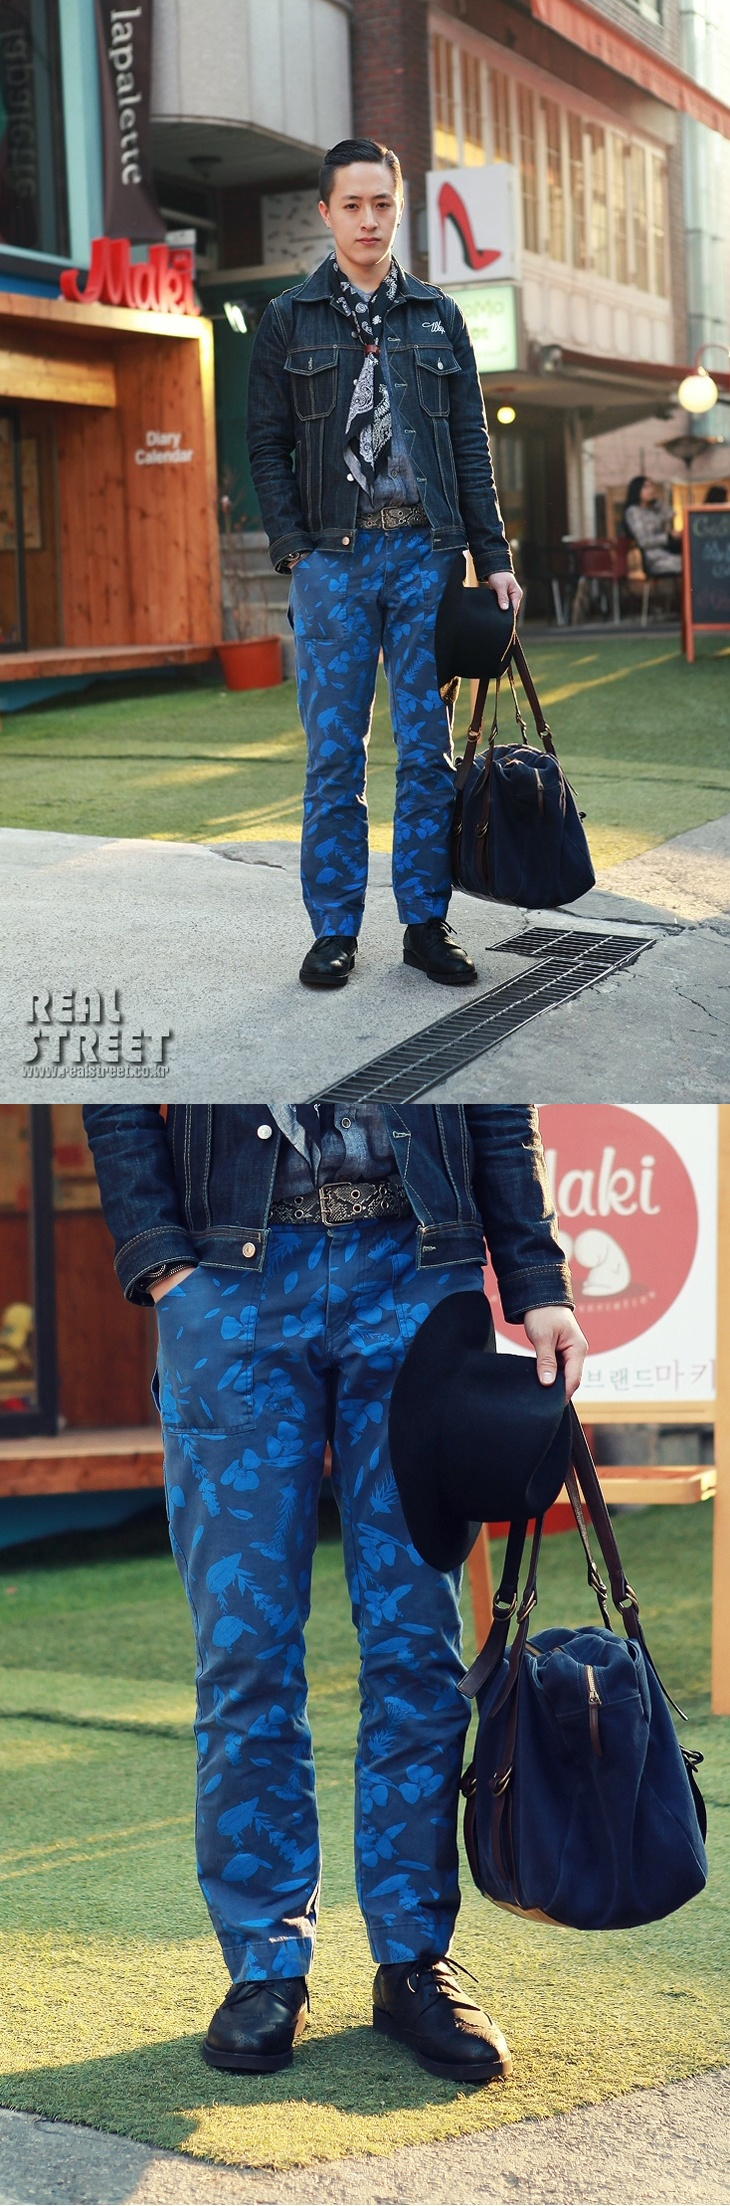 street fashion - GRIENICH HAMPTON COLLECTION WEEKEND NAVY